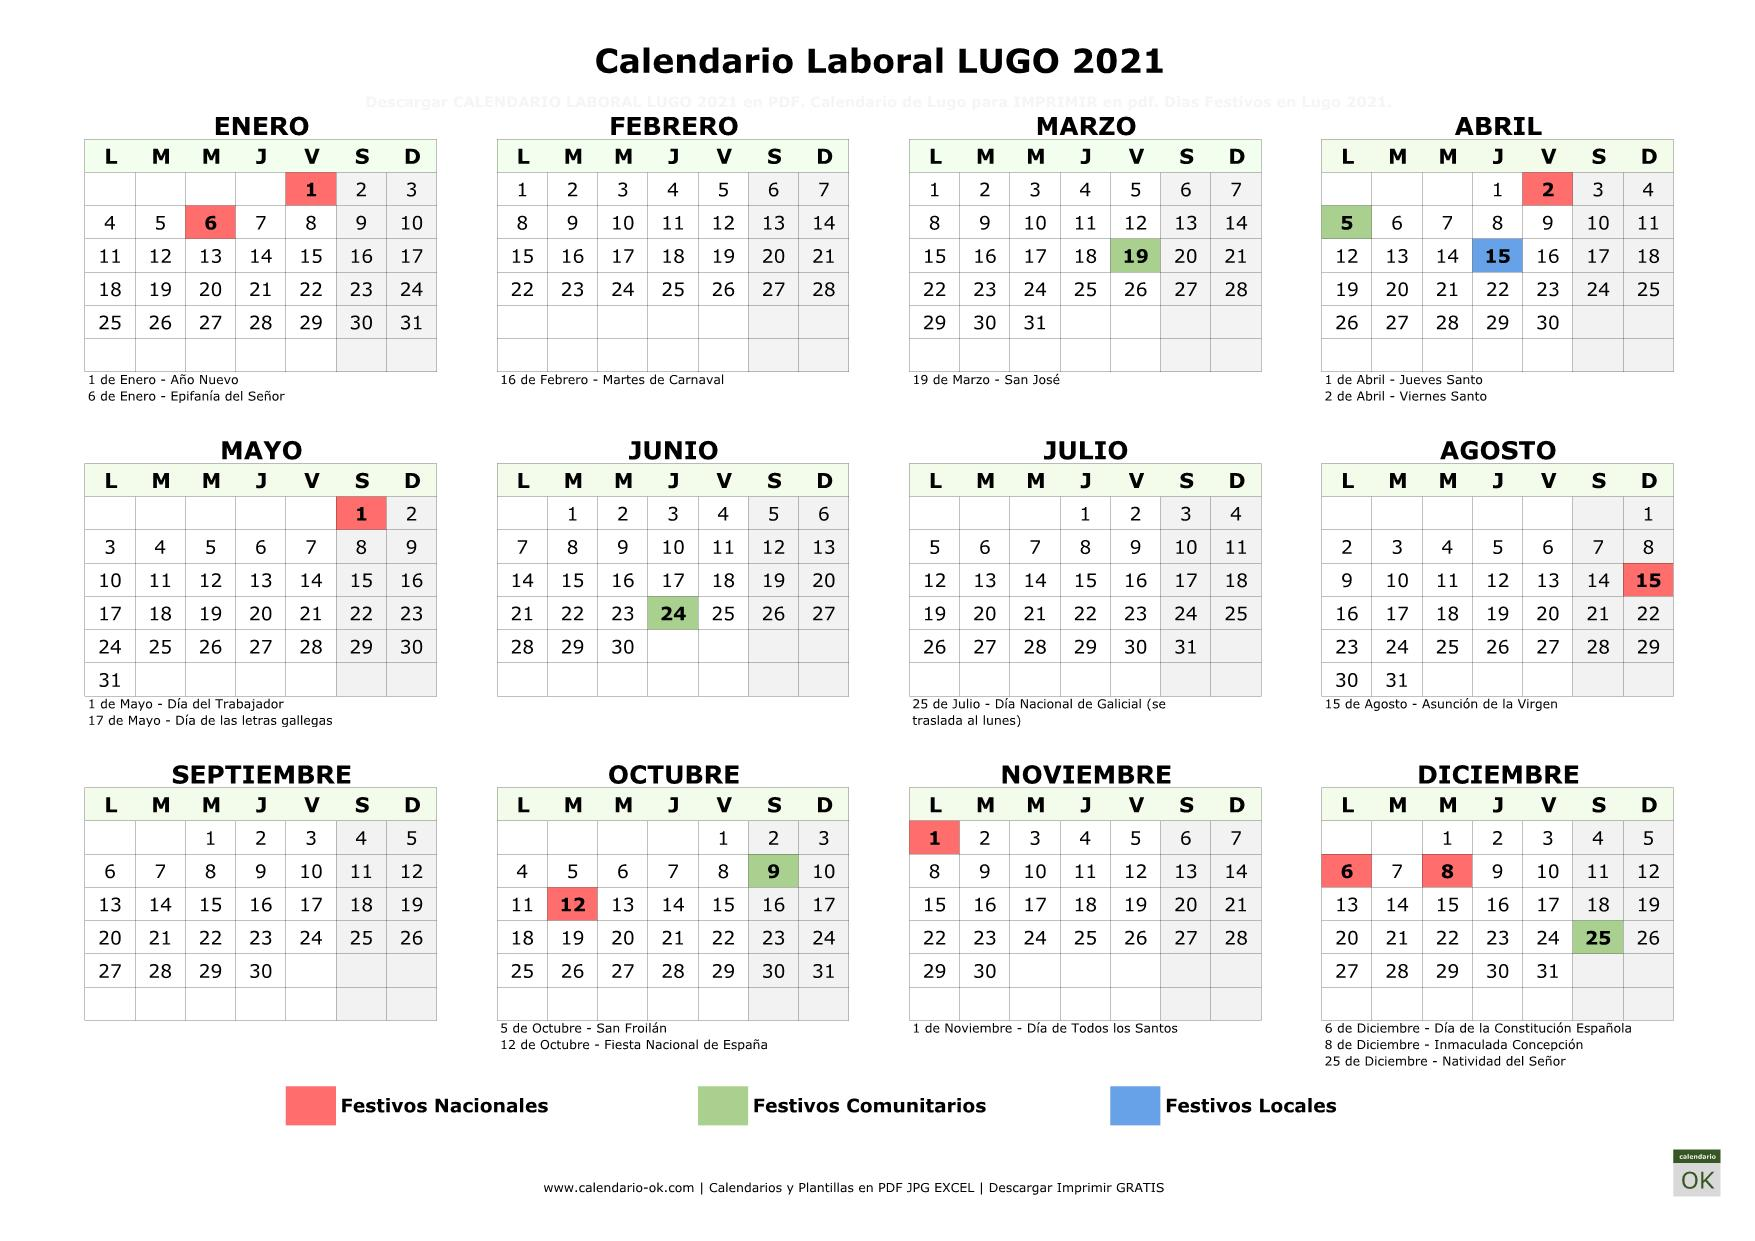 Calendario Laboral Lugo 2021 horizontal